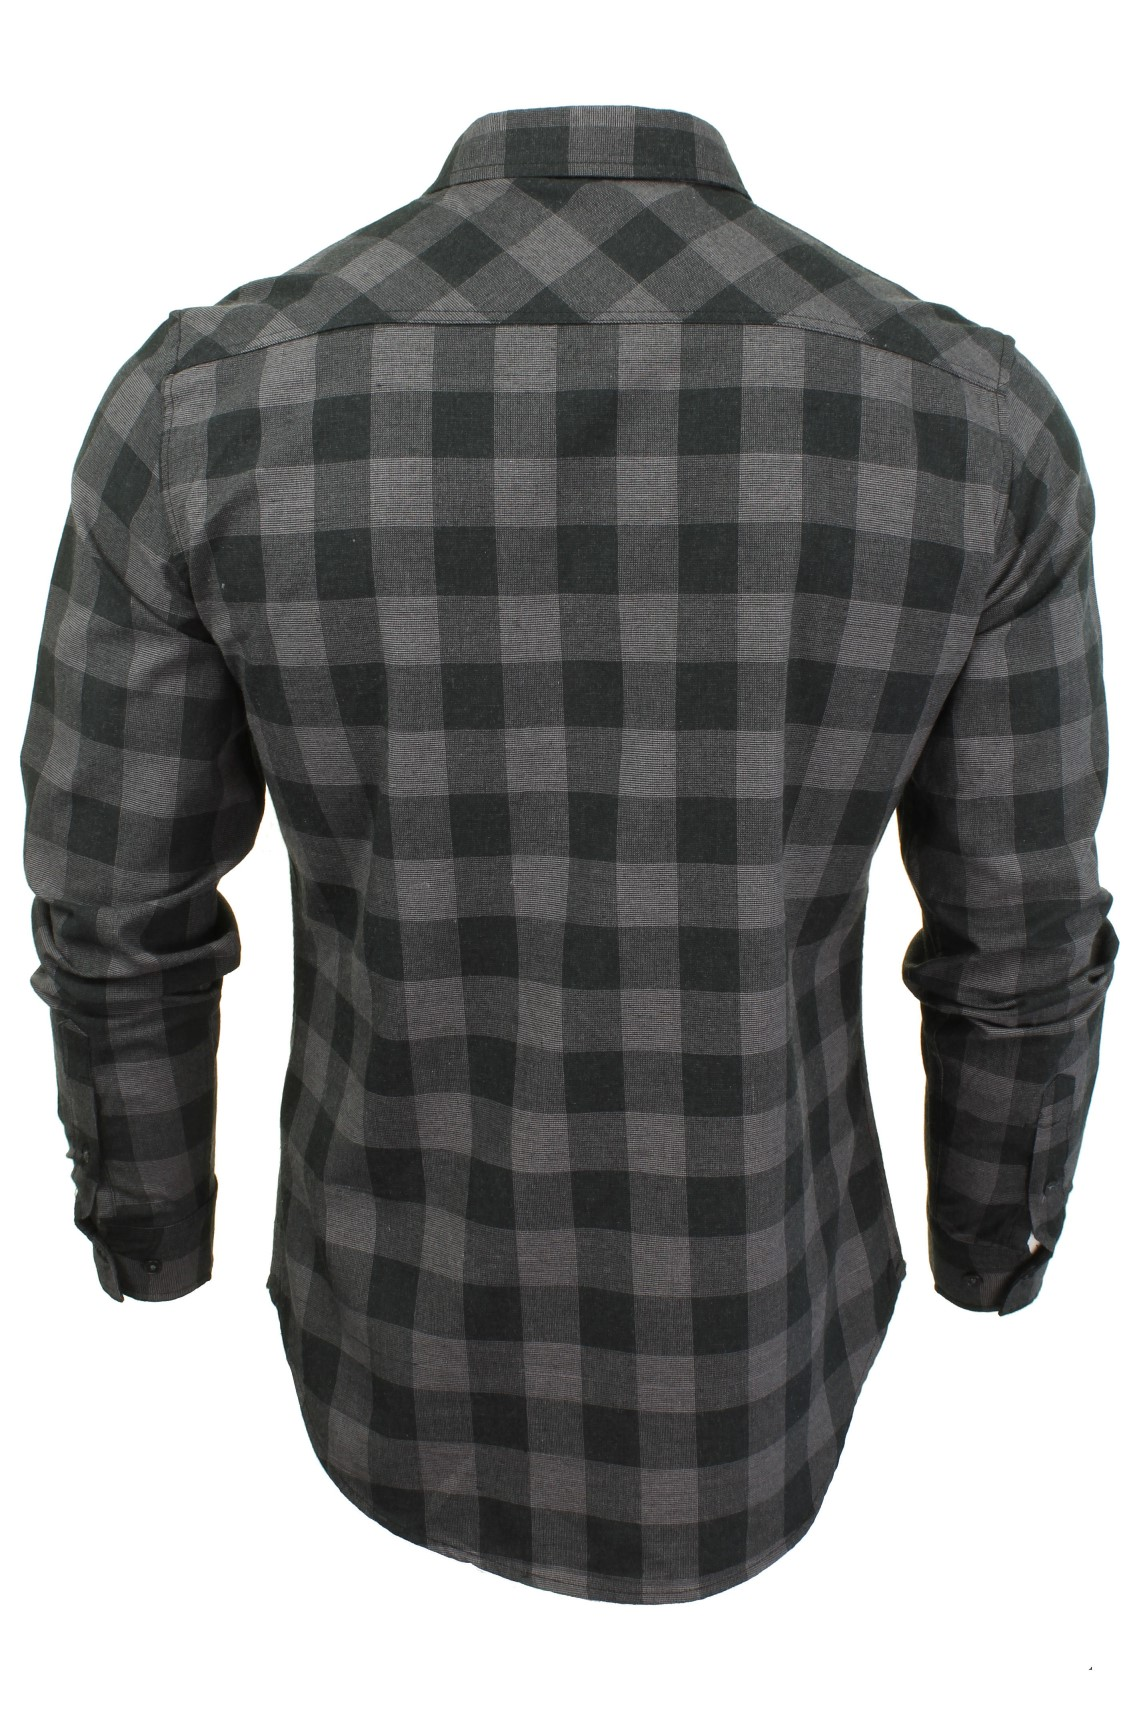 Mens-Check-Cotton-Shirt-by-Crosshatch-039-Obtusa-039 thumbnail 5